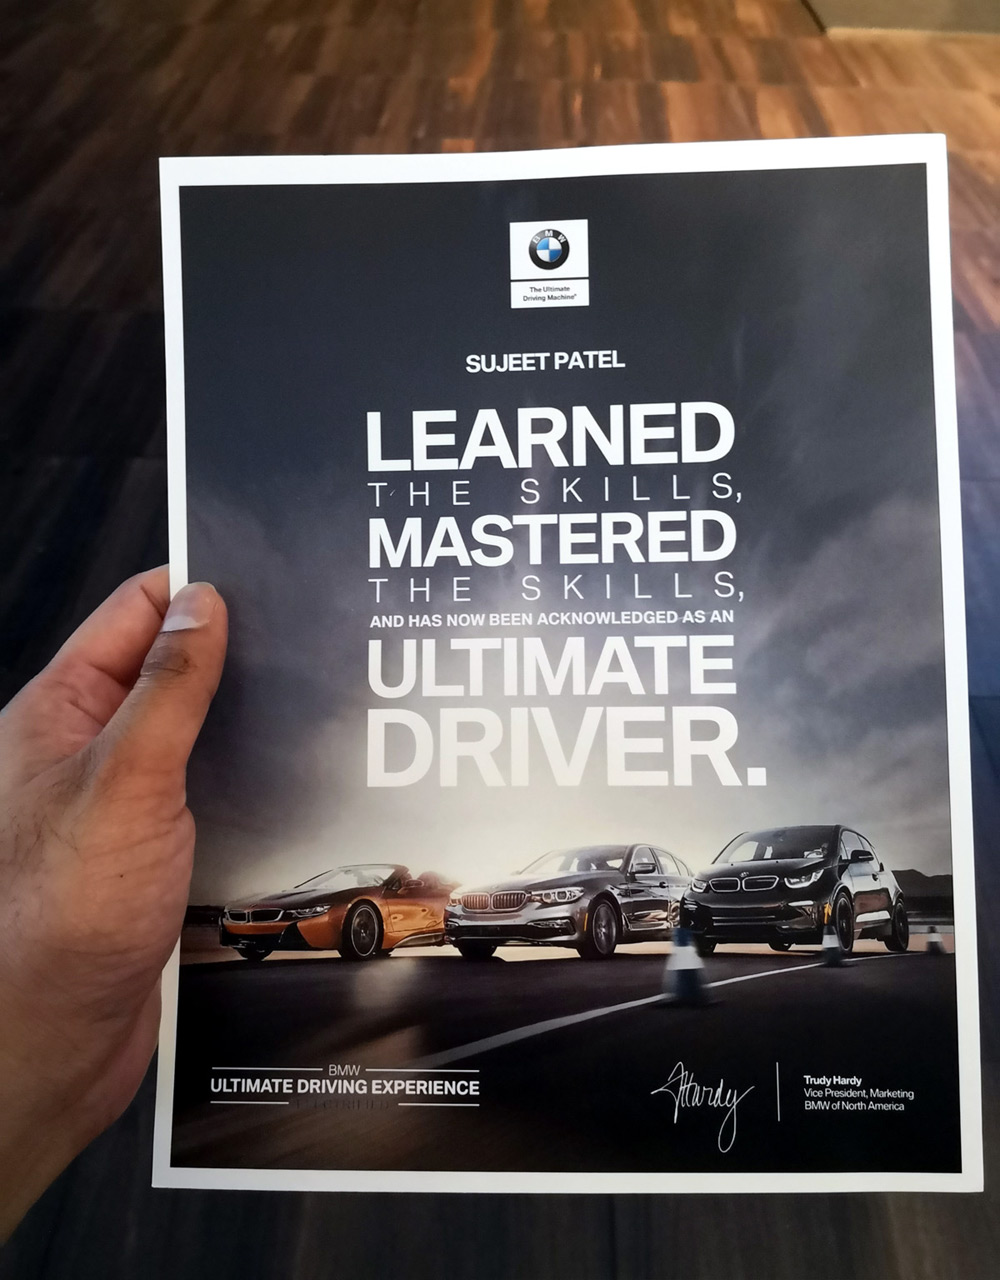 Bmw Ultimate Driving Experience Lets You Explore The Limits Of The M3 M4